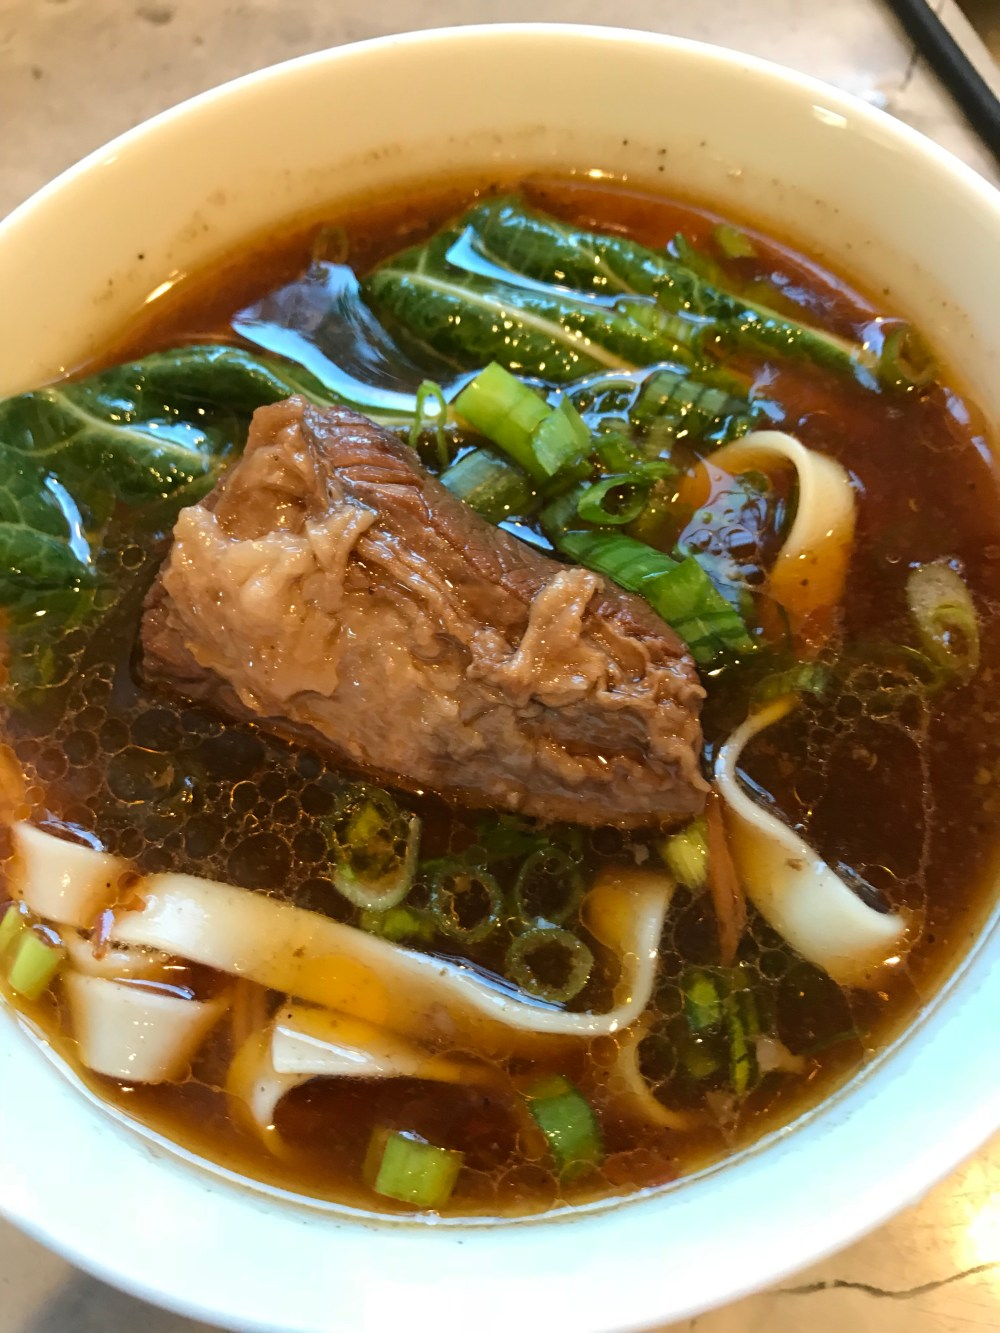 A family recipe using fork tender beef, noodles in an Asian broth.